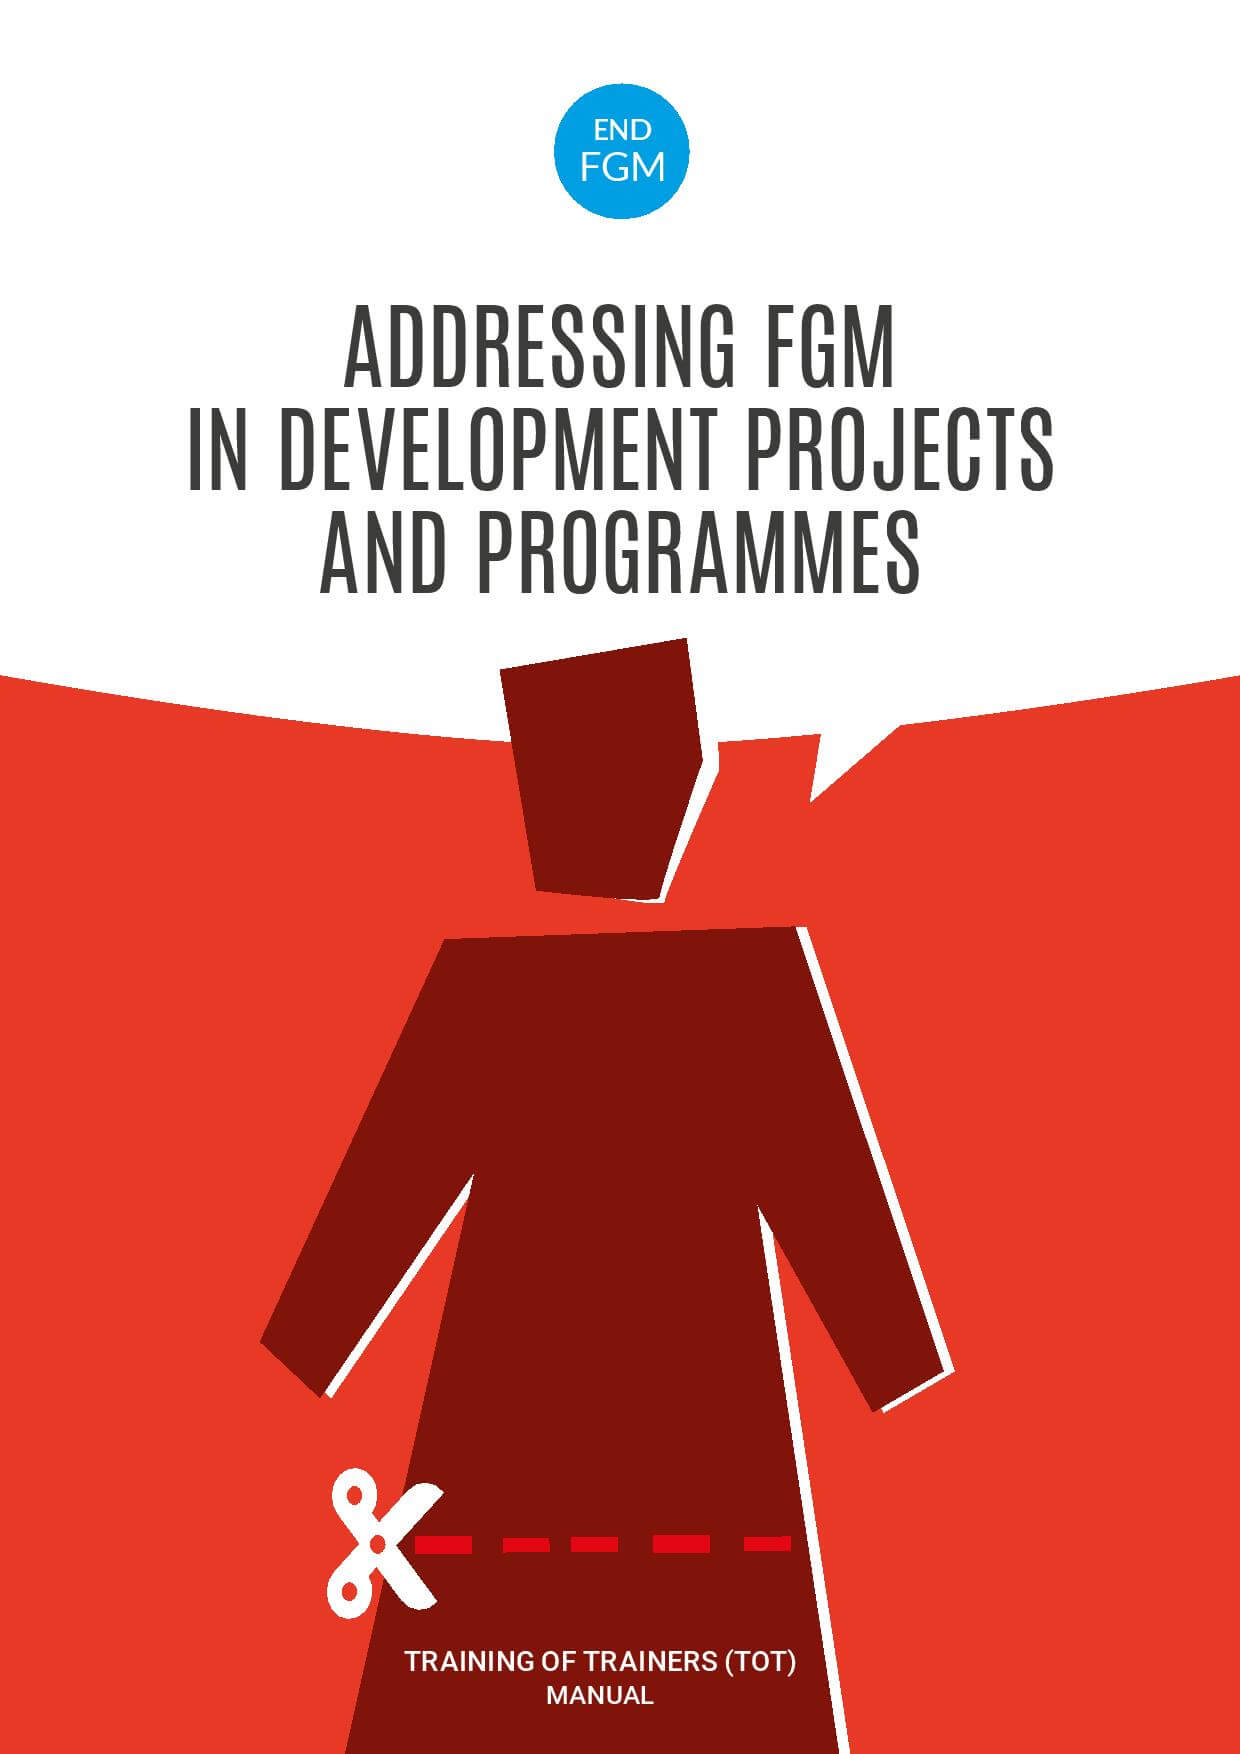 Addressing FGM in Development Projects and Programmes